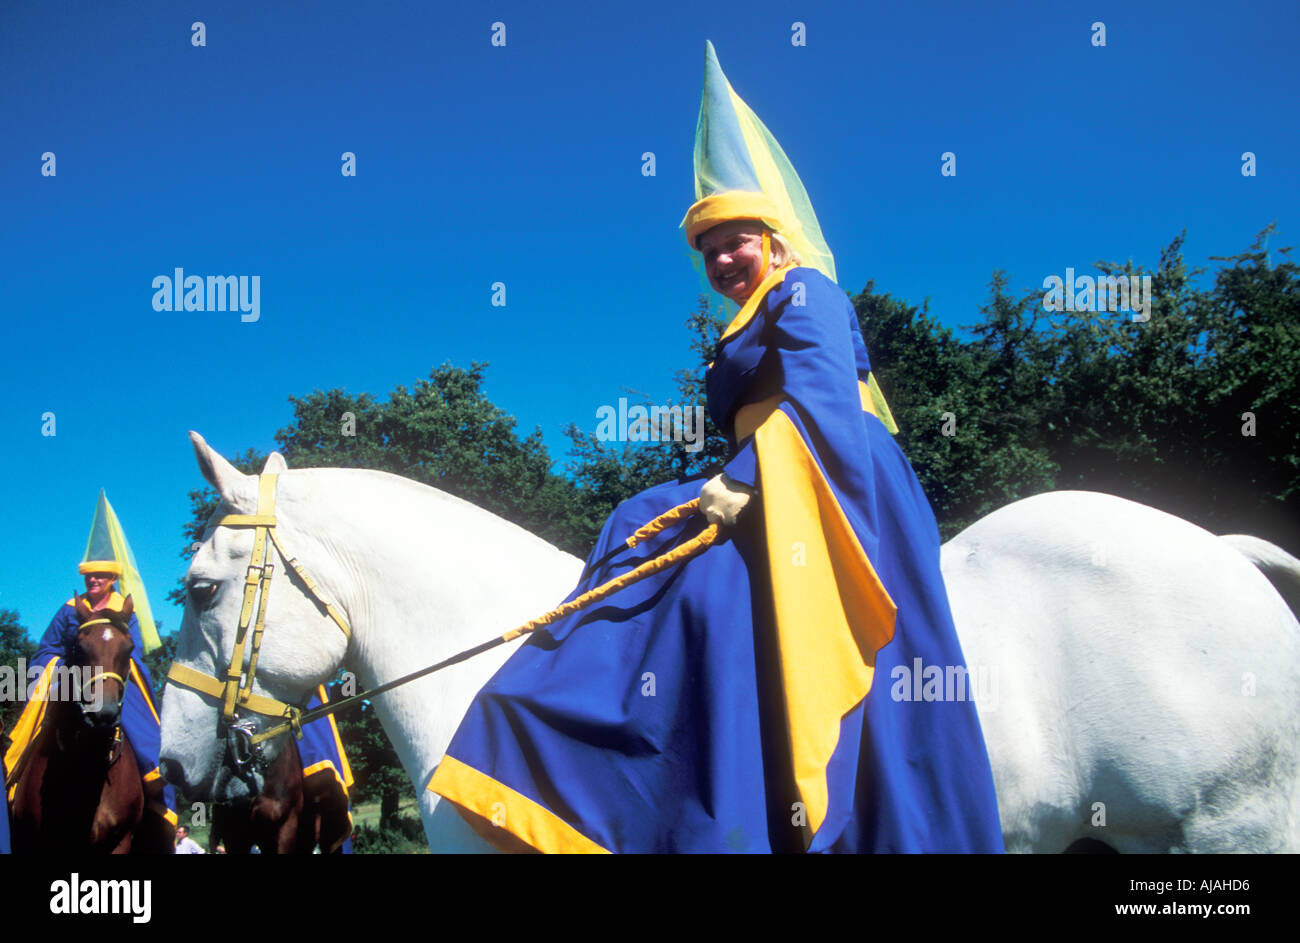 Medieval woman riding at Herstmonceux castle - Stock Image